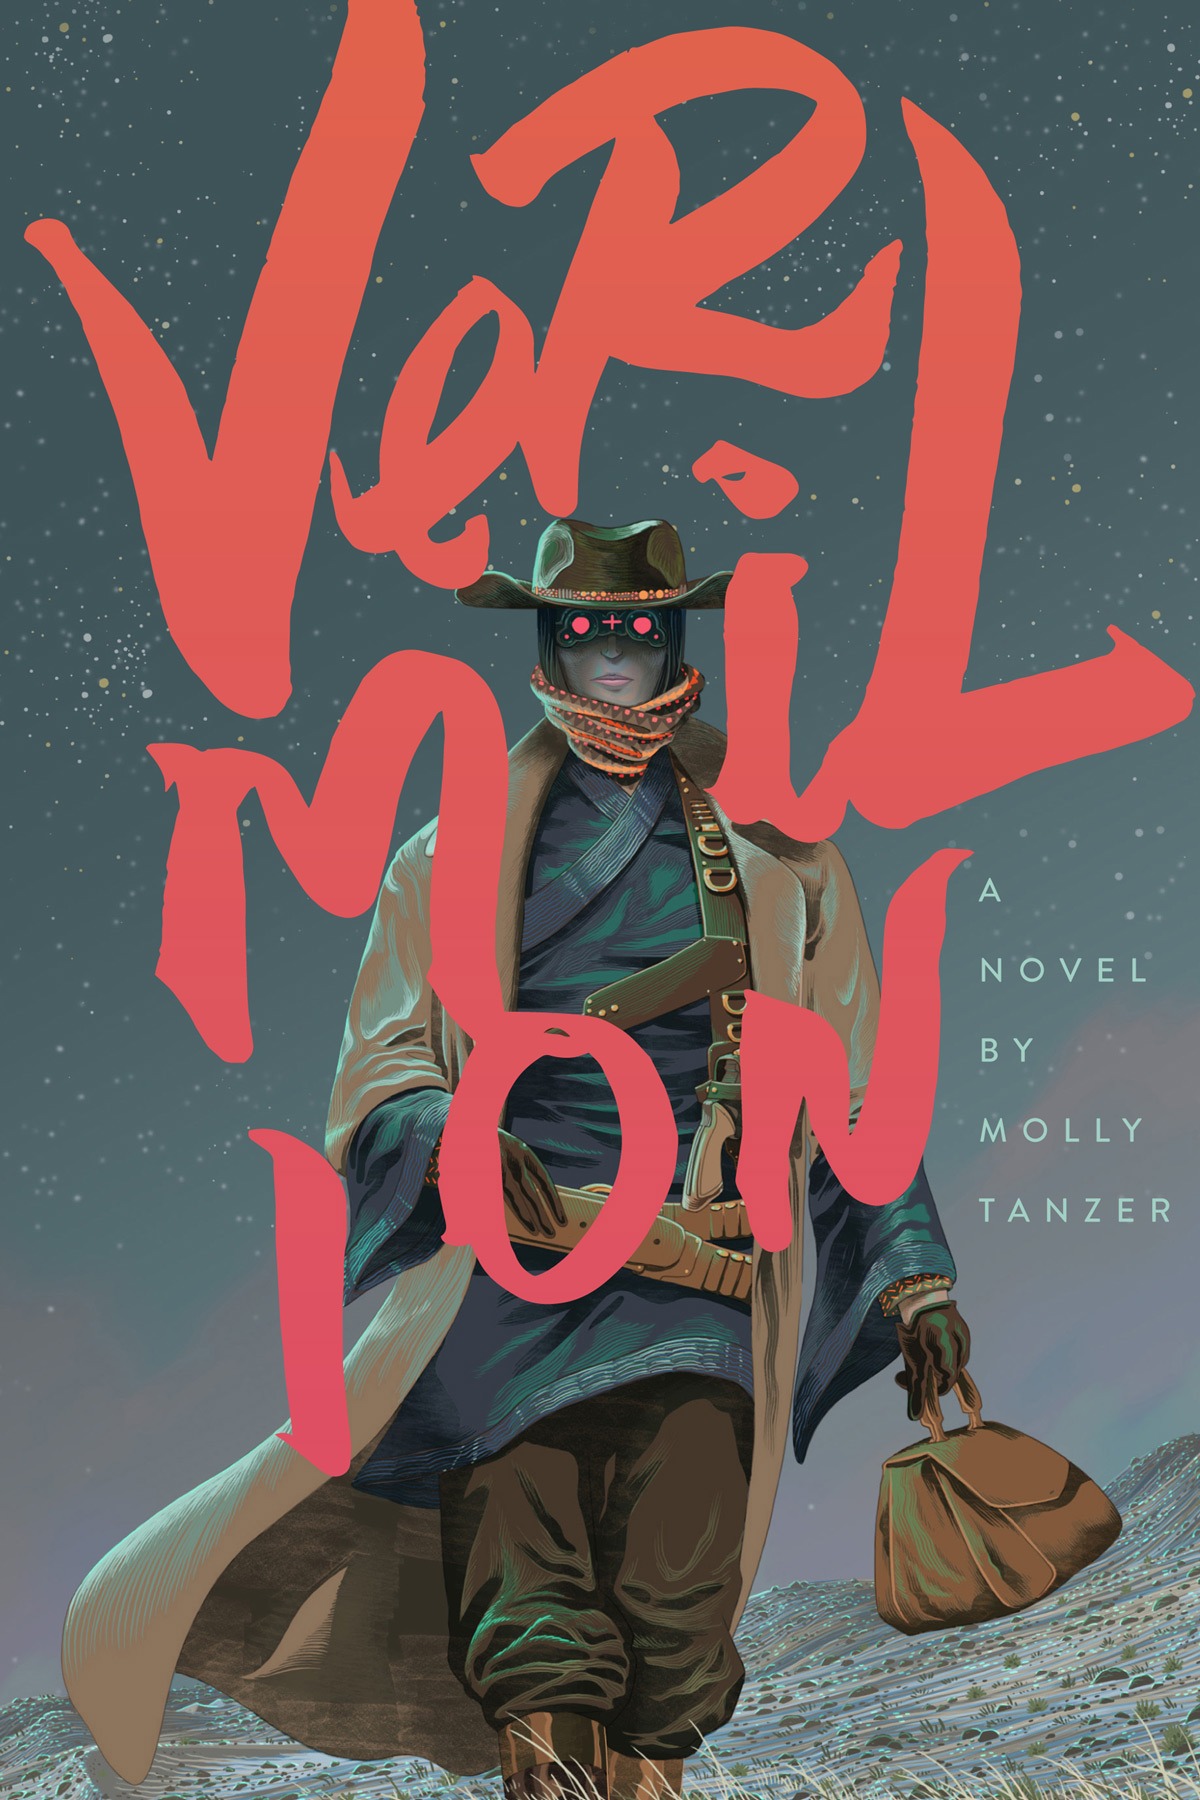 Molly Tanzer: Five Things I Learned Writing Vermilion